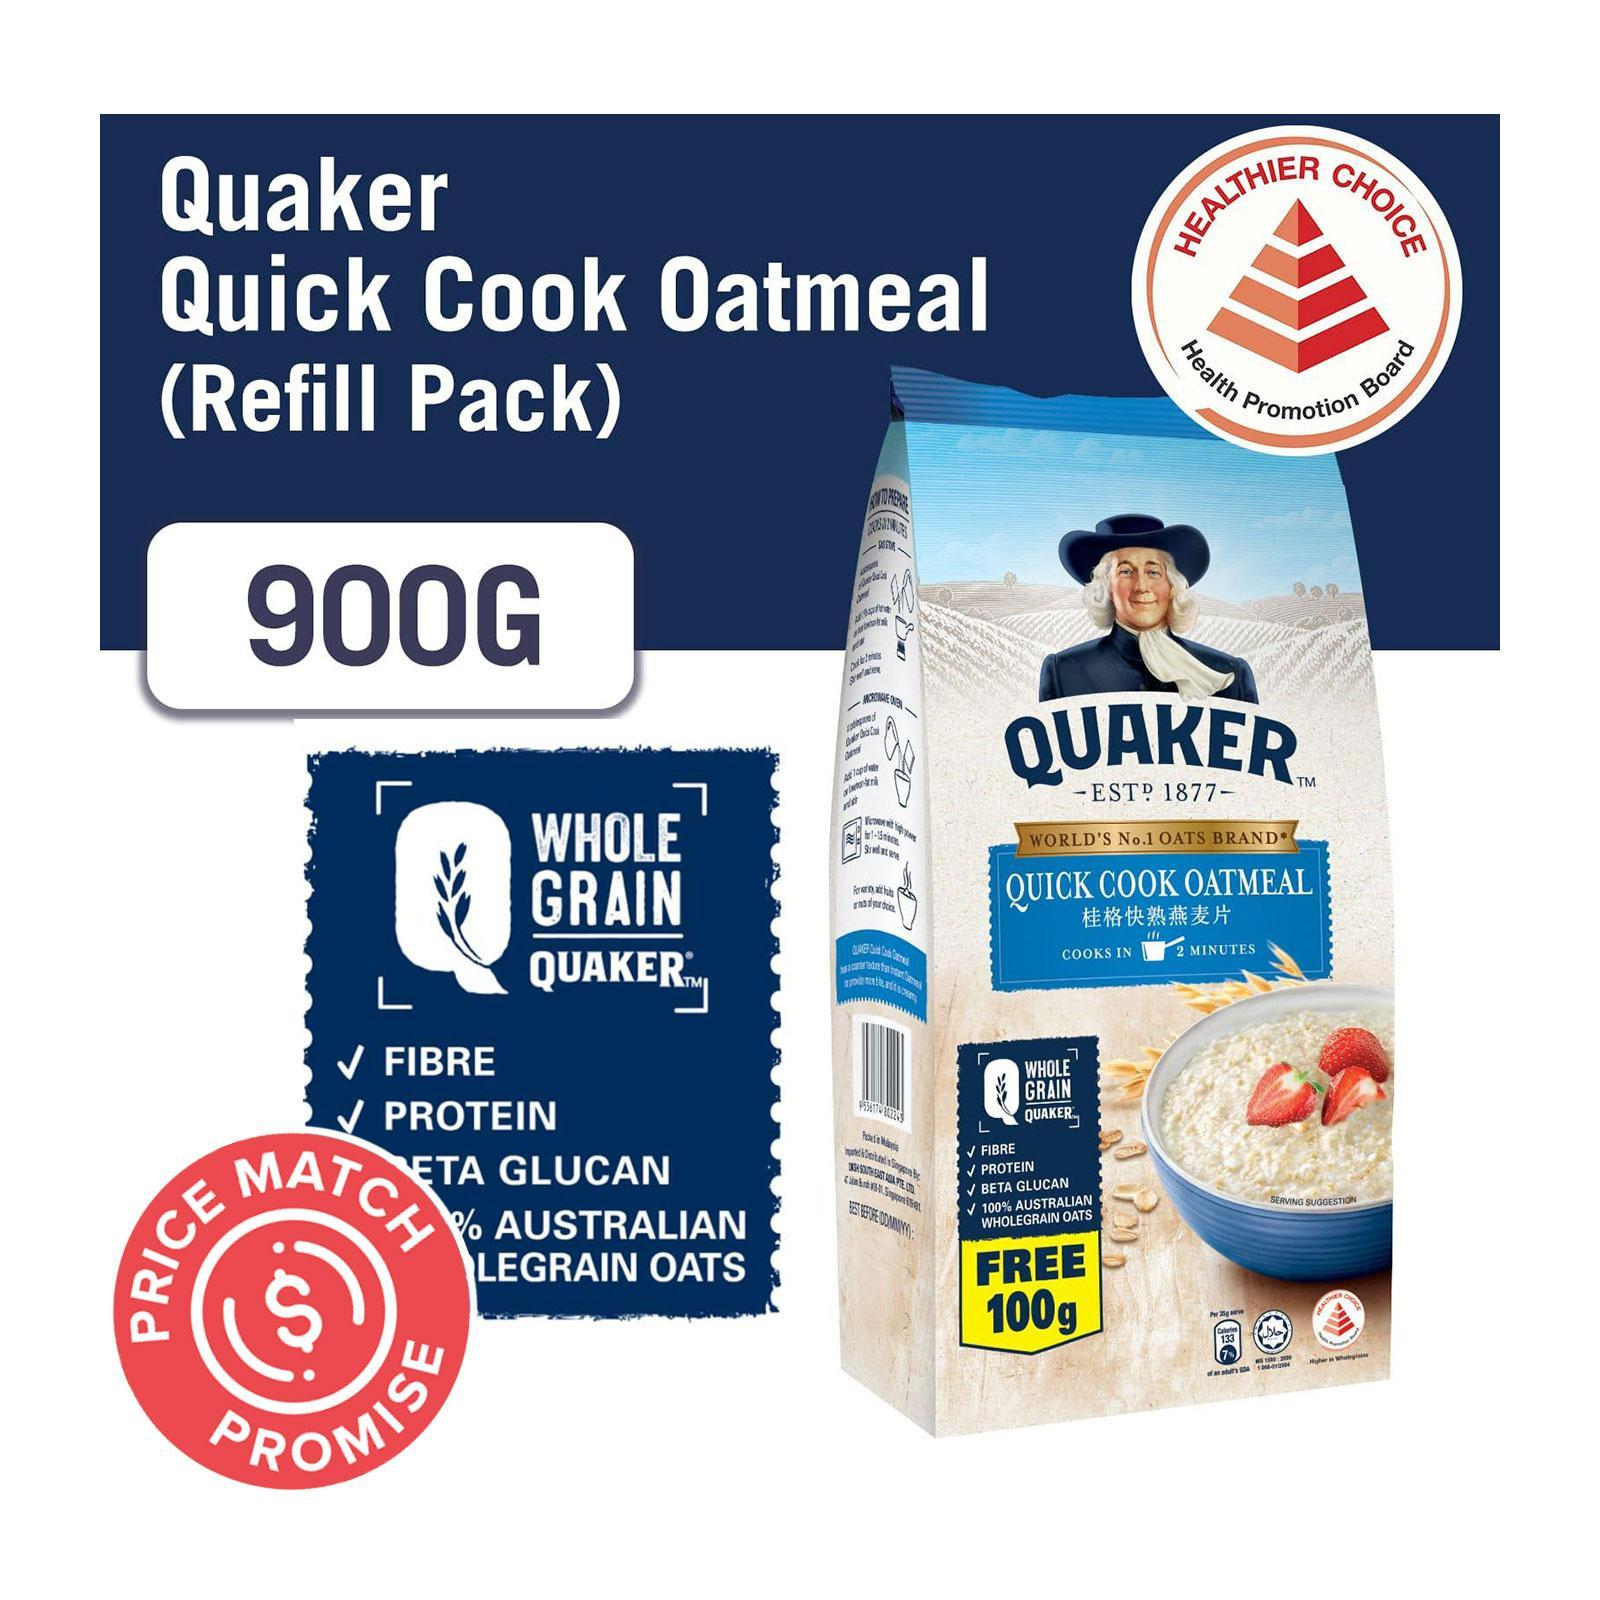 Quaker Hearty Supreme Quick Cook Oatmeal Refill Pack